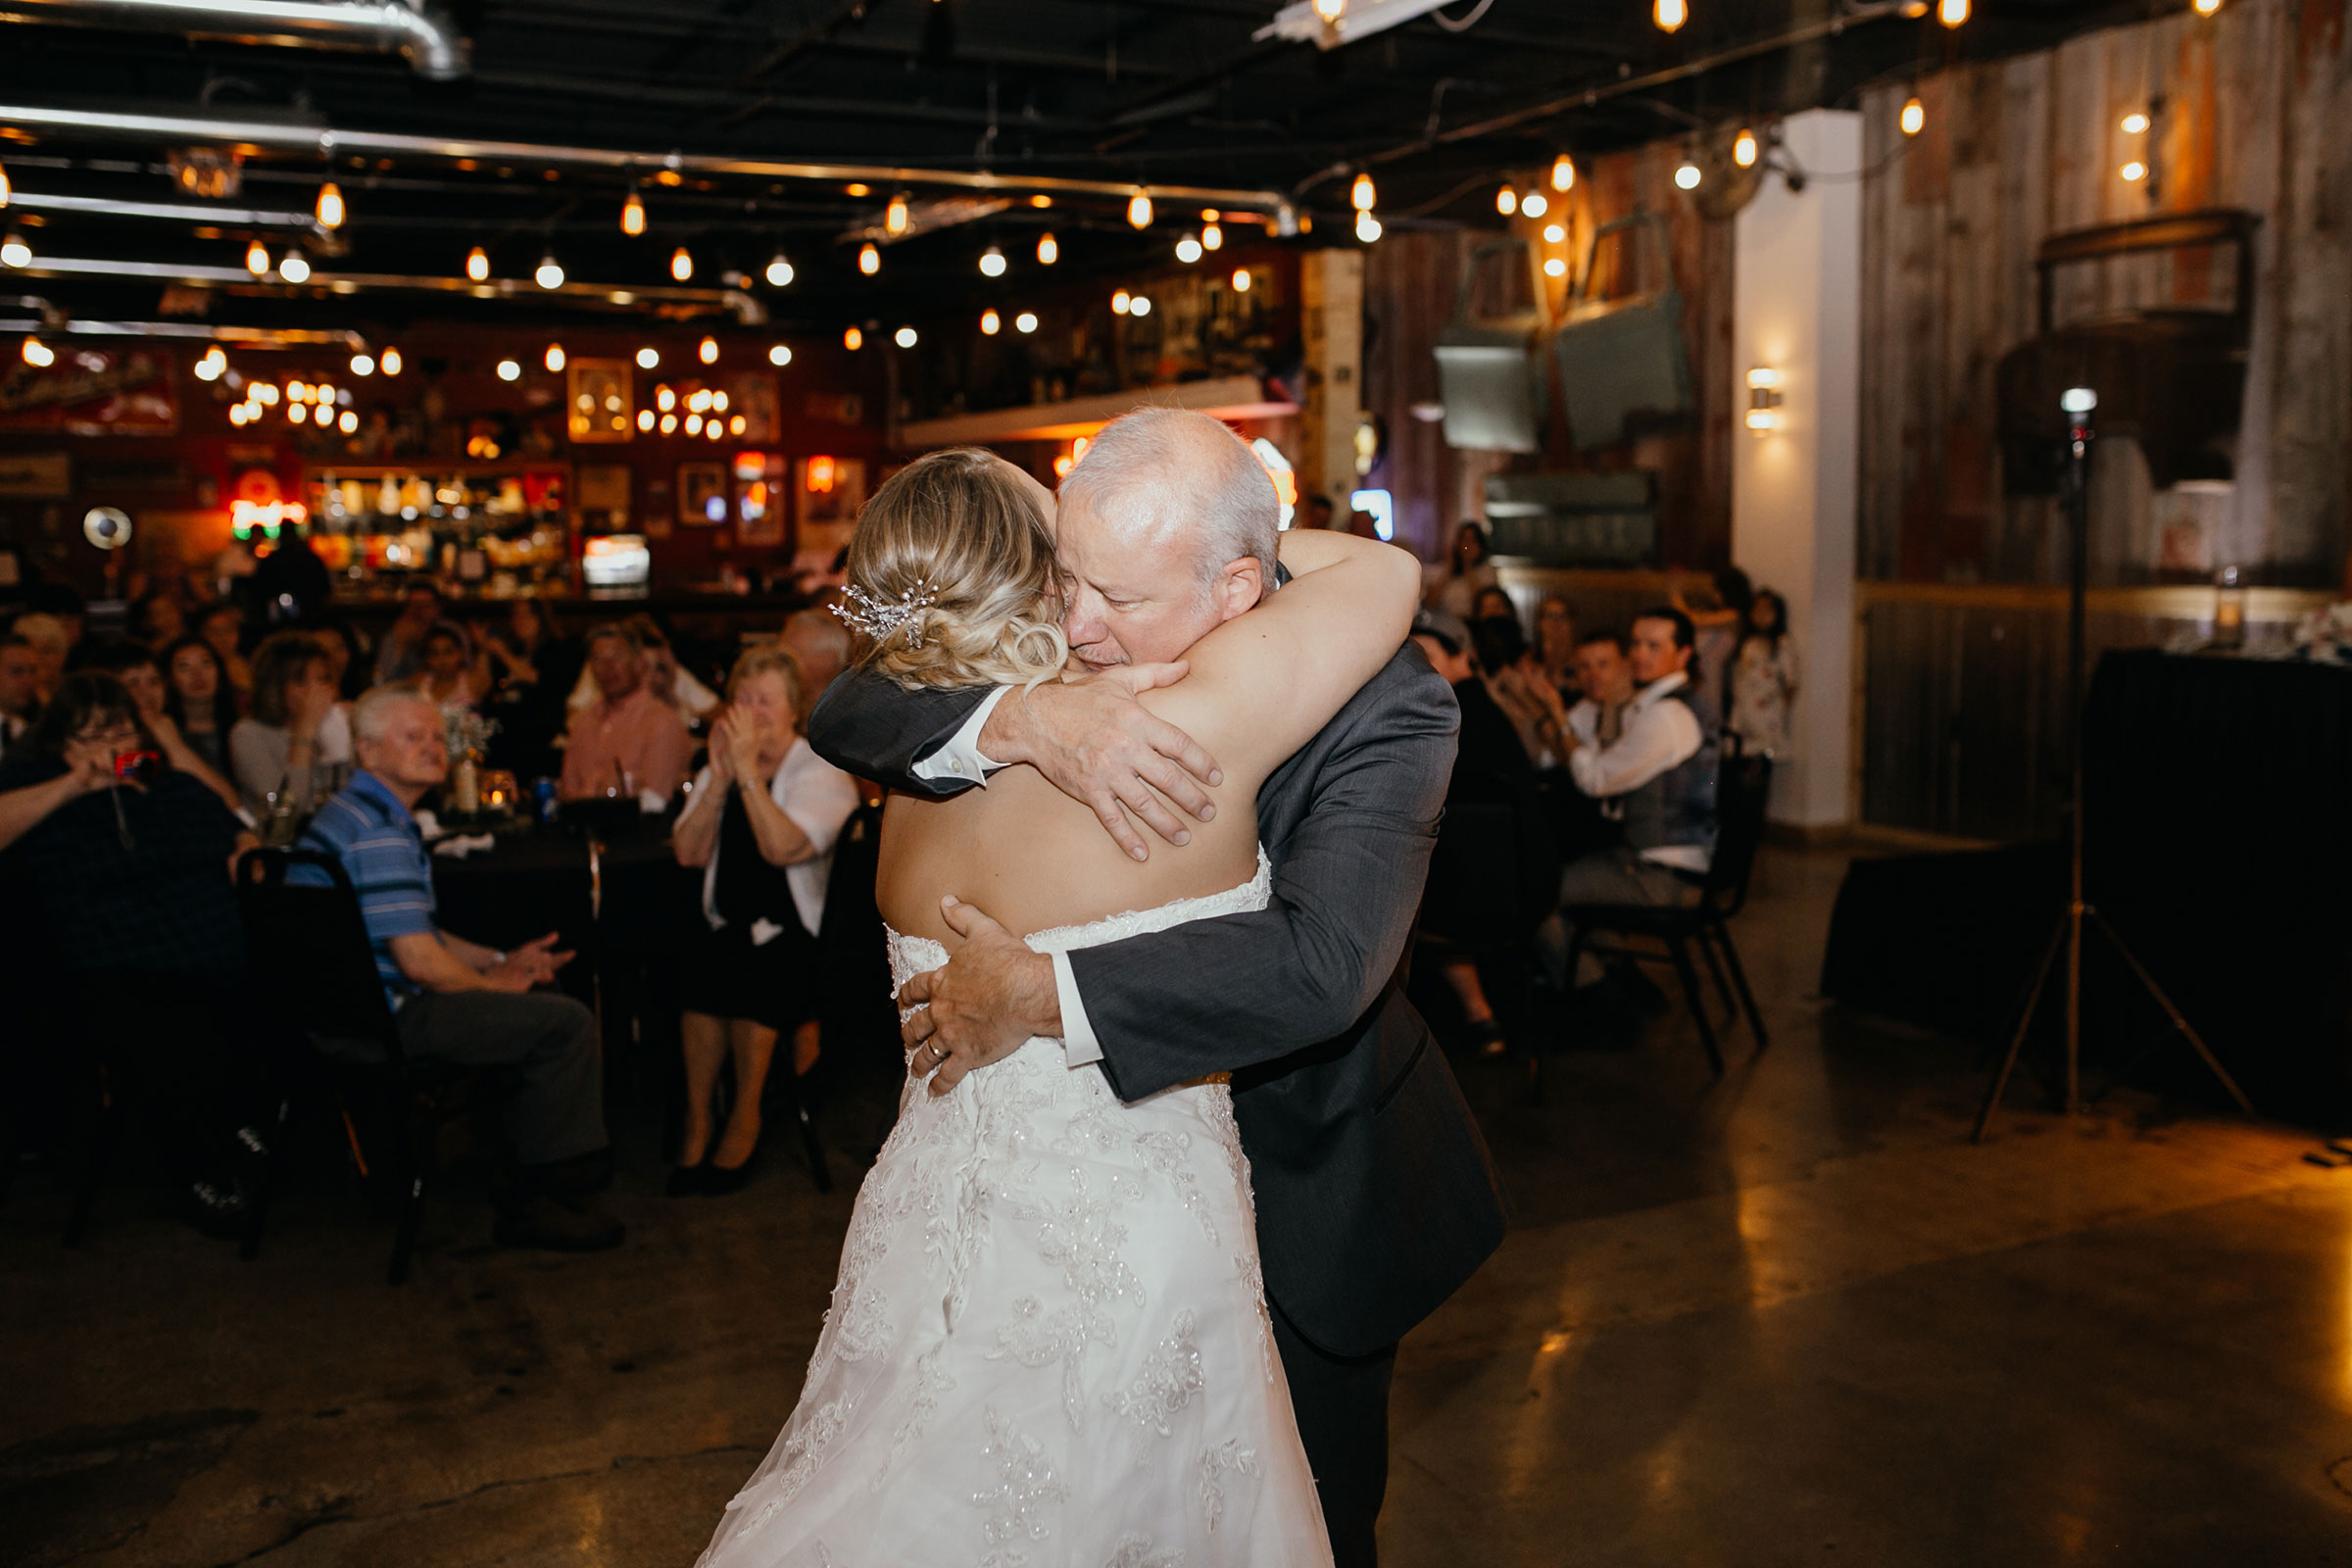 bride-hugging-father-at-dance-decades-event-center-building-desmoines-iowa-raelyn-ramey-photography..jpg